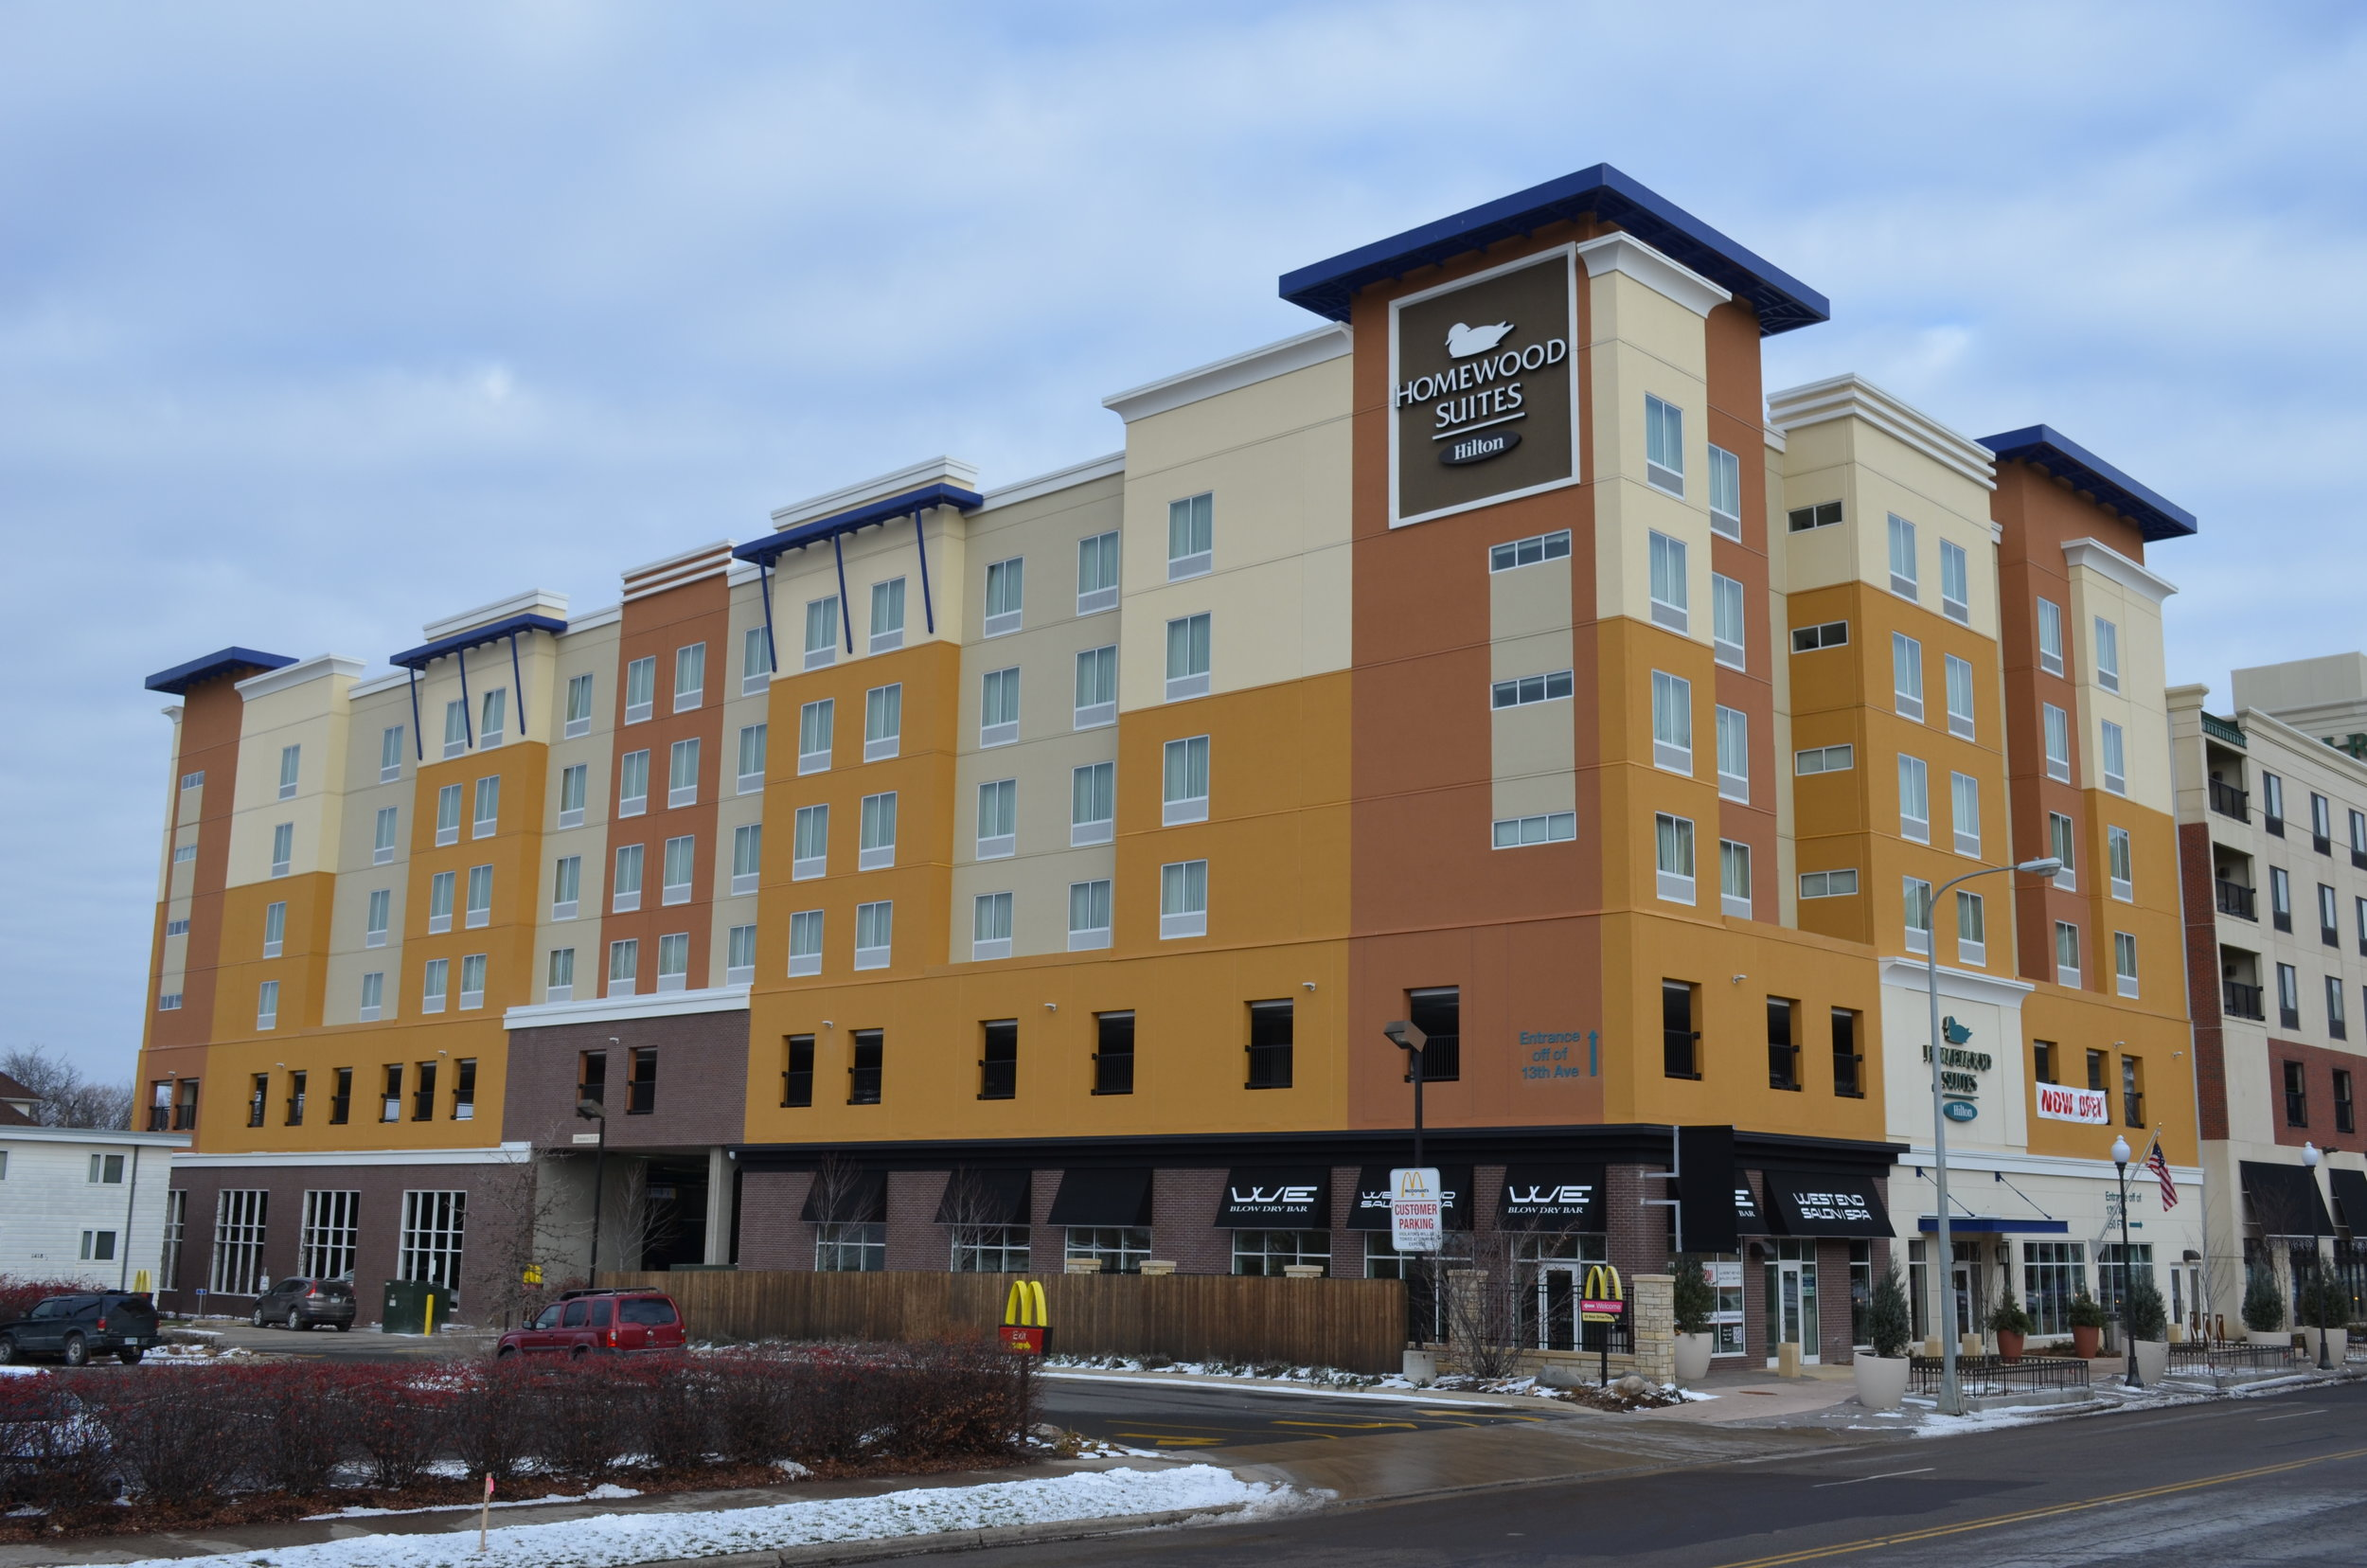 Outside view of the Homewood Suites in Rochester, MN